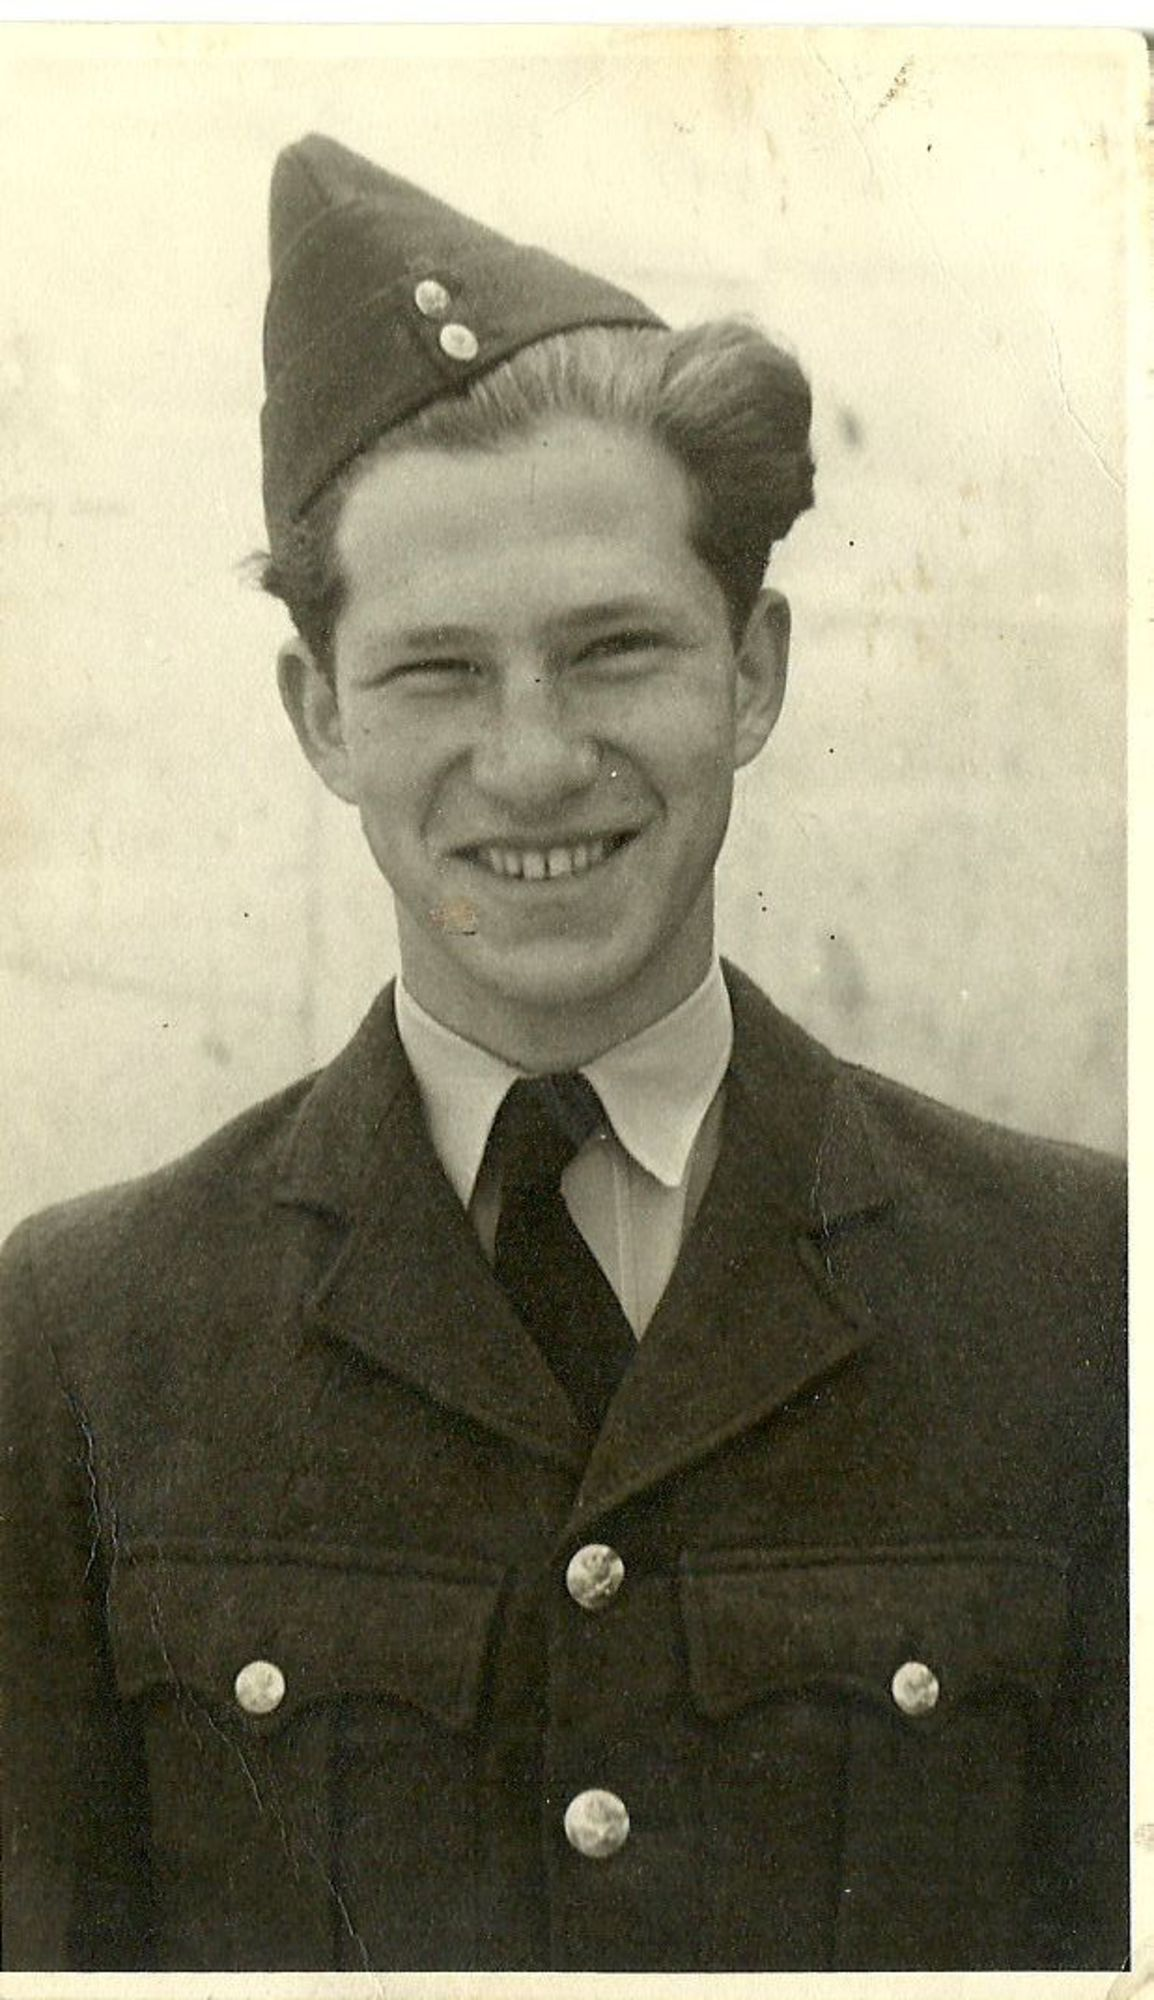 Royal Air Force, 1944